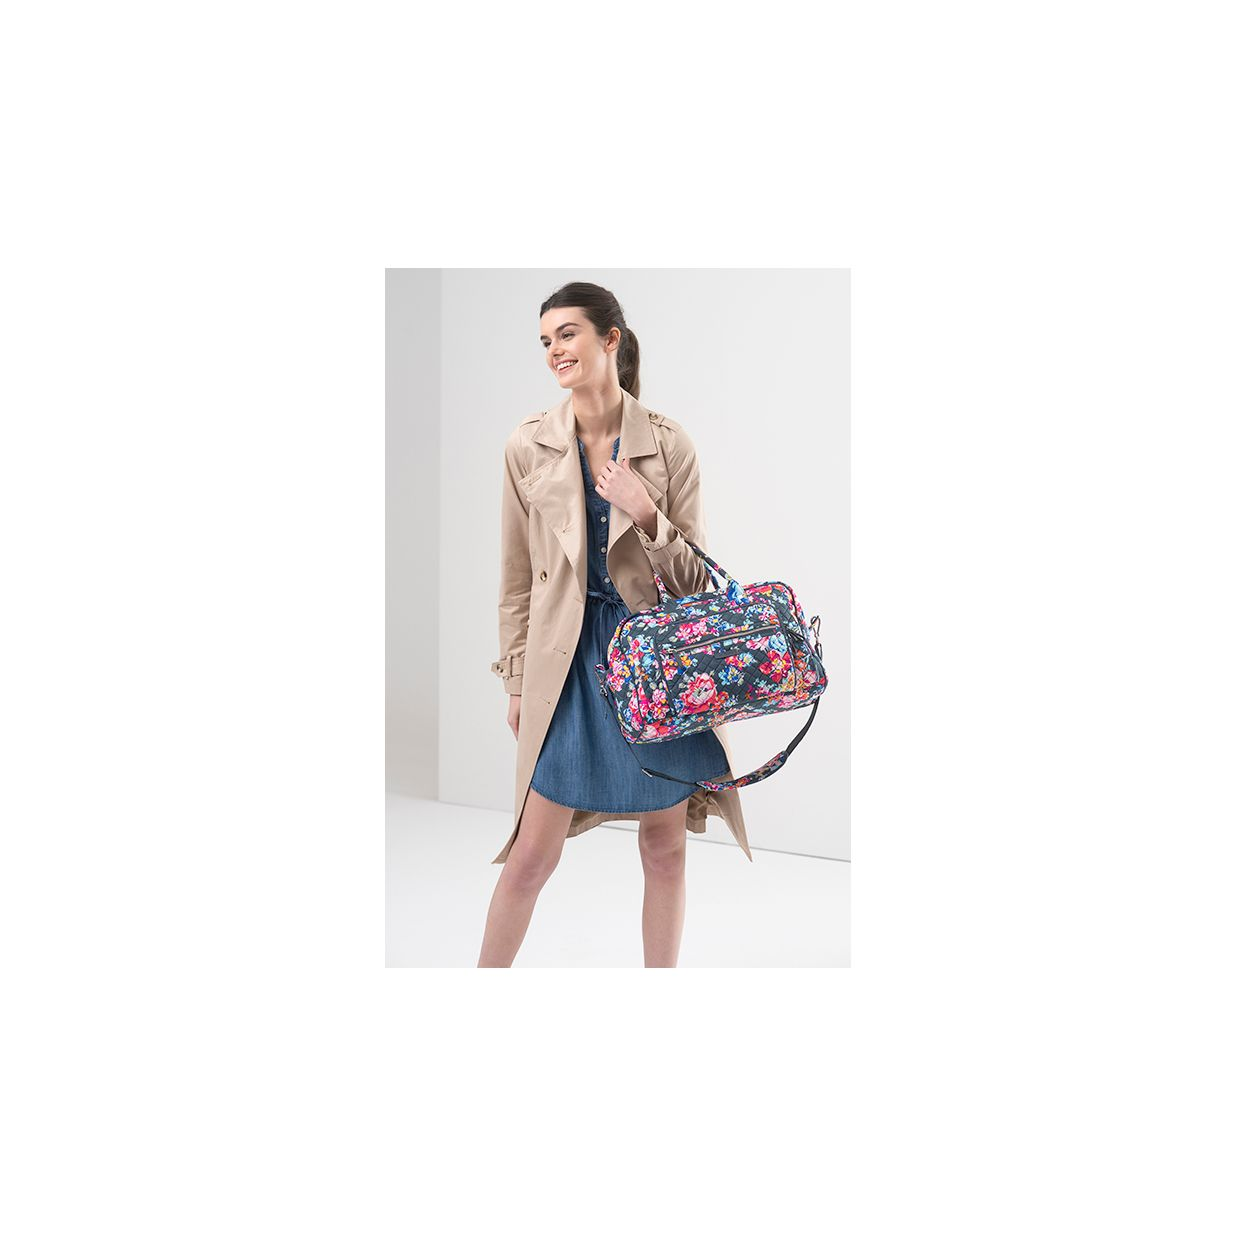 d8502dca4 ... Image of Iconic Compact Weekender Travel Bag ...